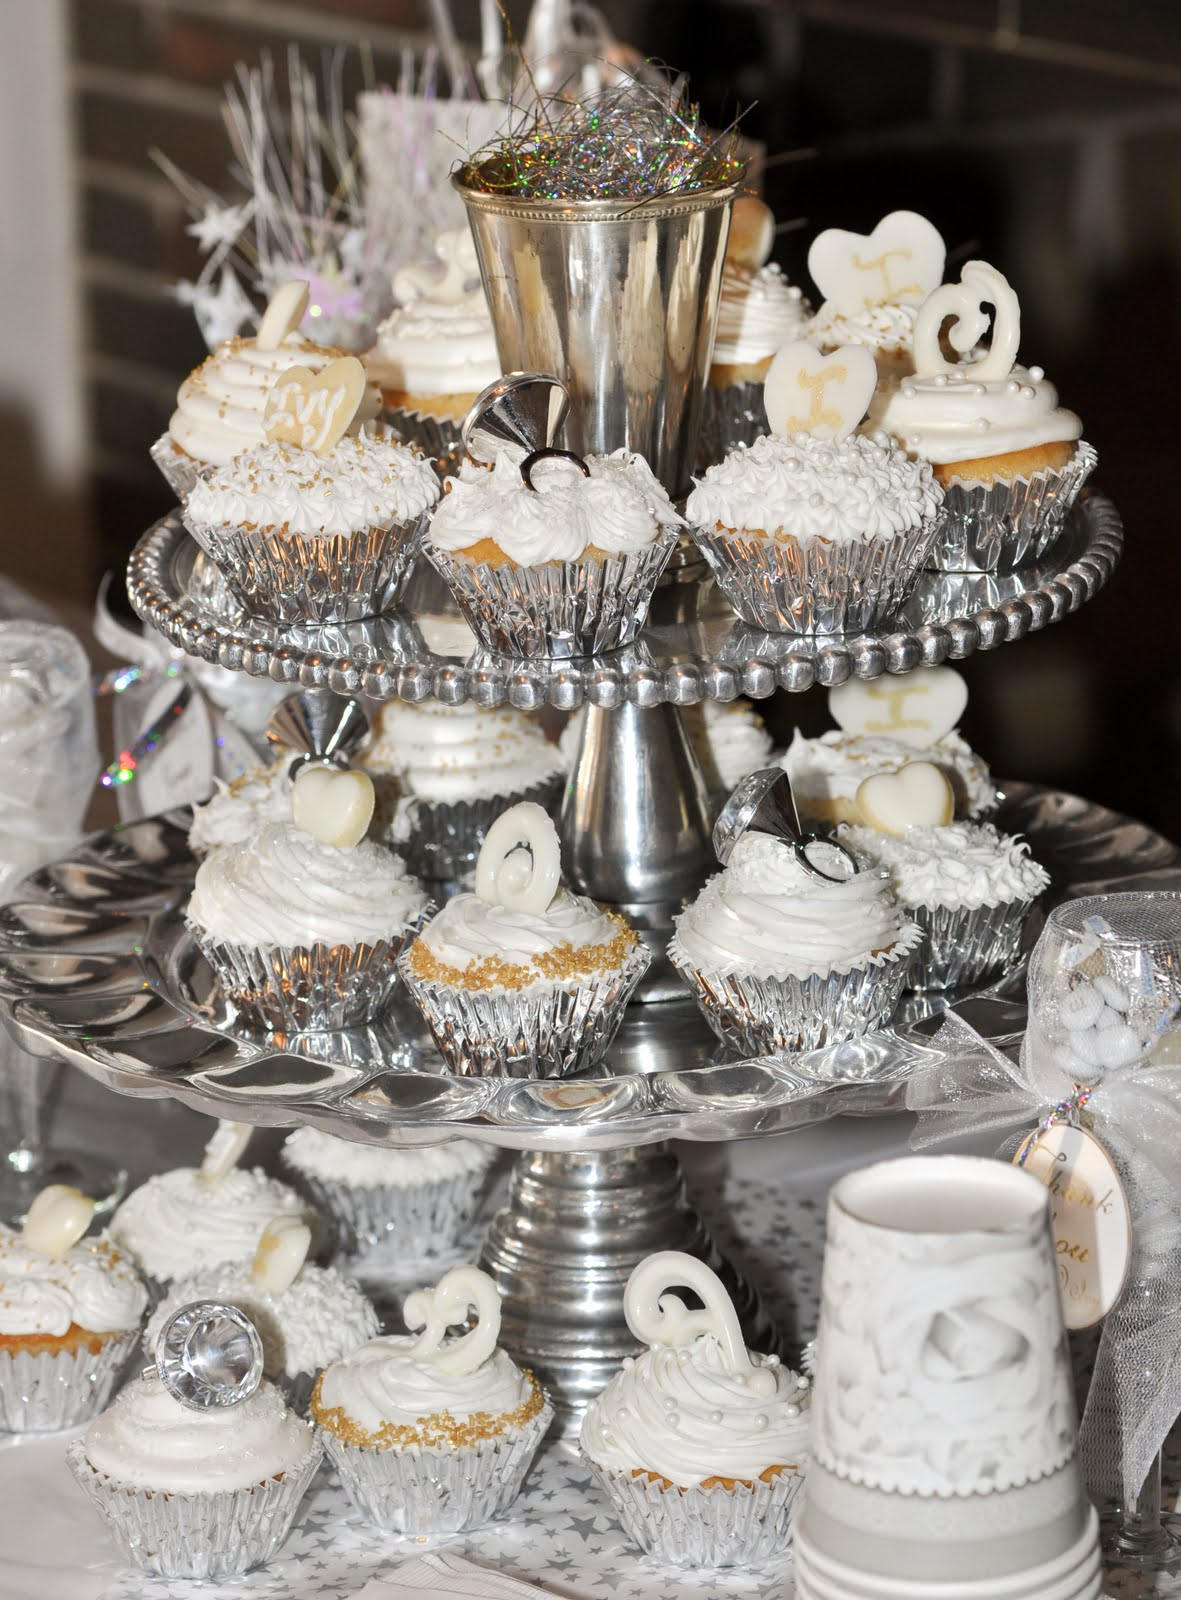 Indulge With Me: White cupcakes